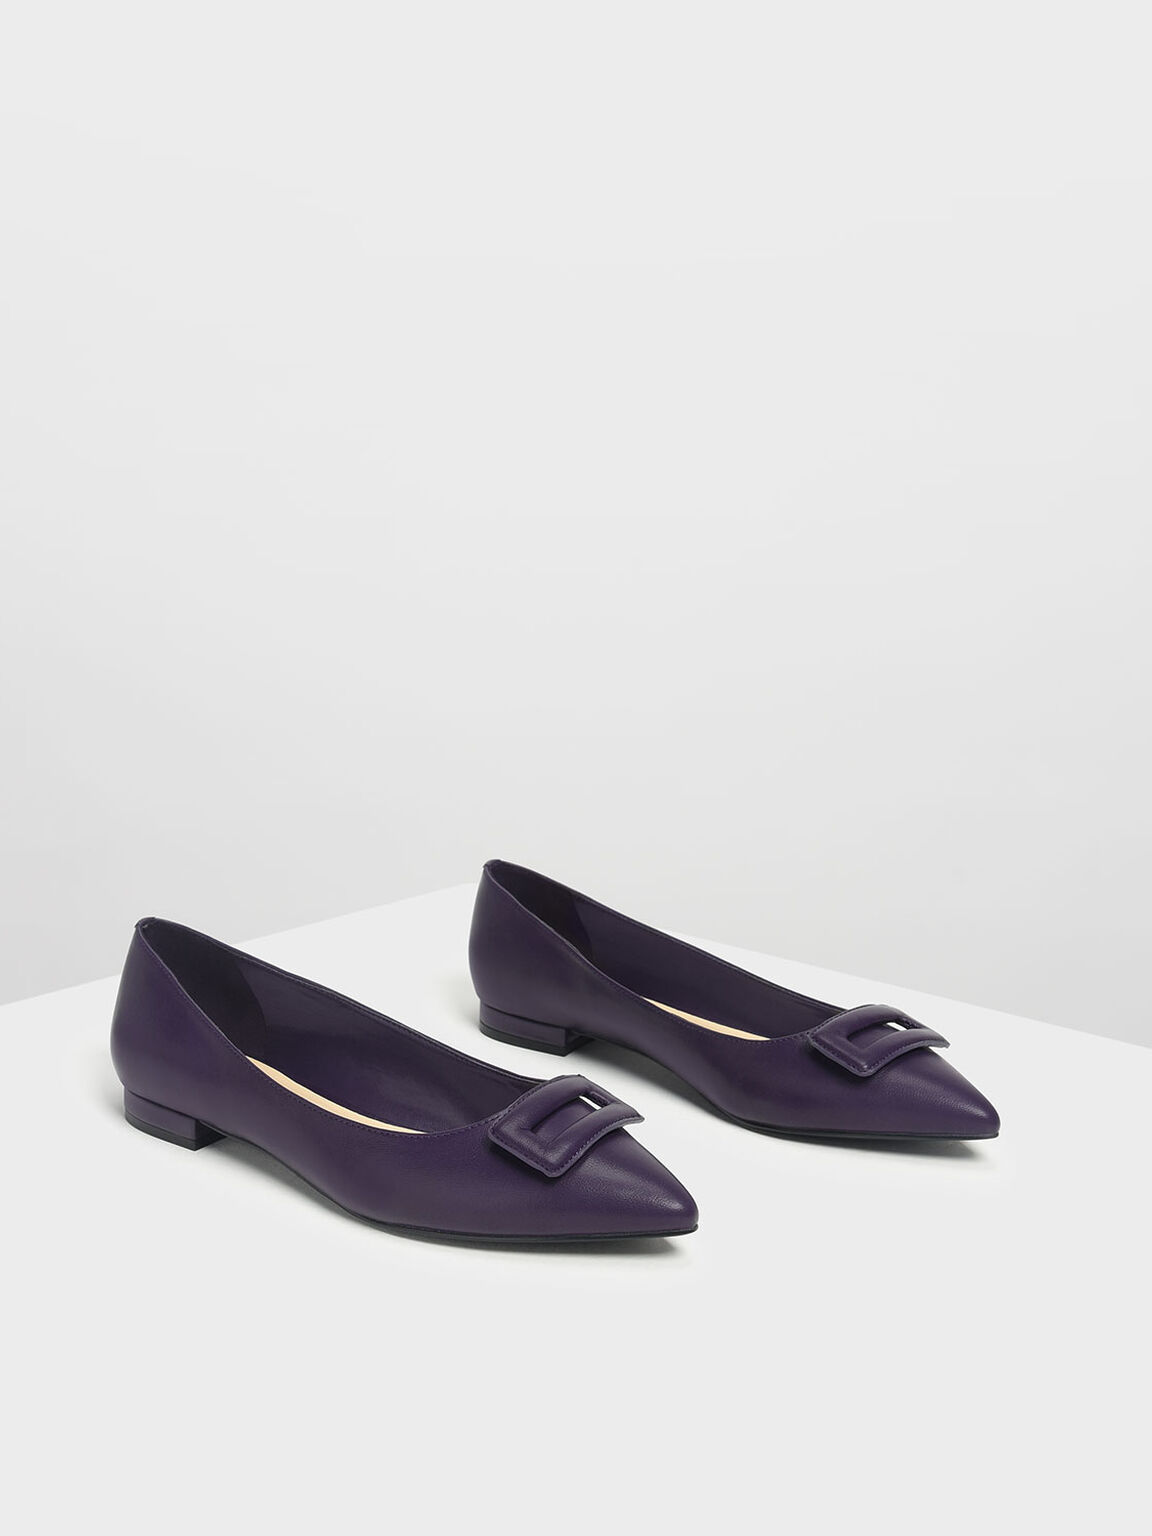 Wrapped Buckle Detail Ballerina Flats, Purple, hi-res